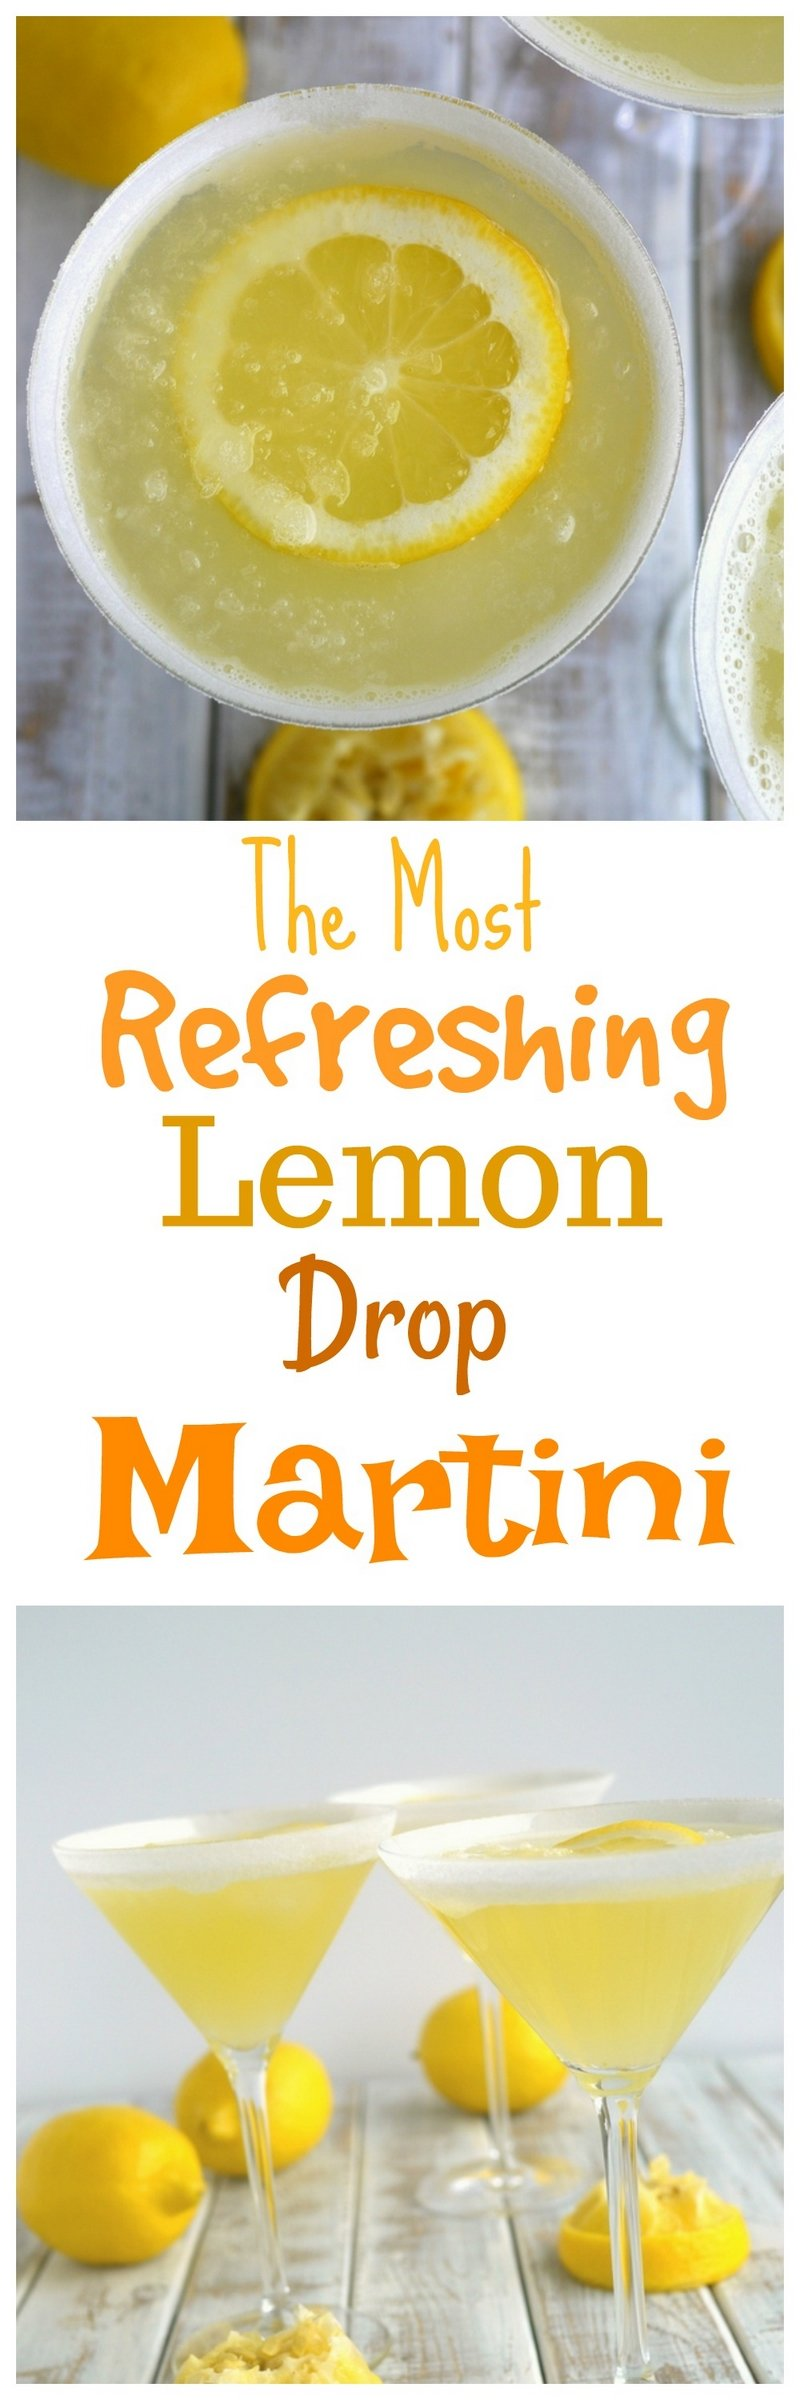 The perfect lemon drop martini should be refreshingly tart, not cloyingly sweet. Lucky for you this is The Most Refreshing Lemon Drop Martini! Give it a try soon. via @cmpollak1